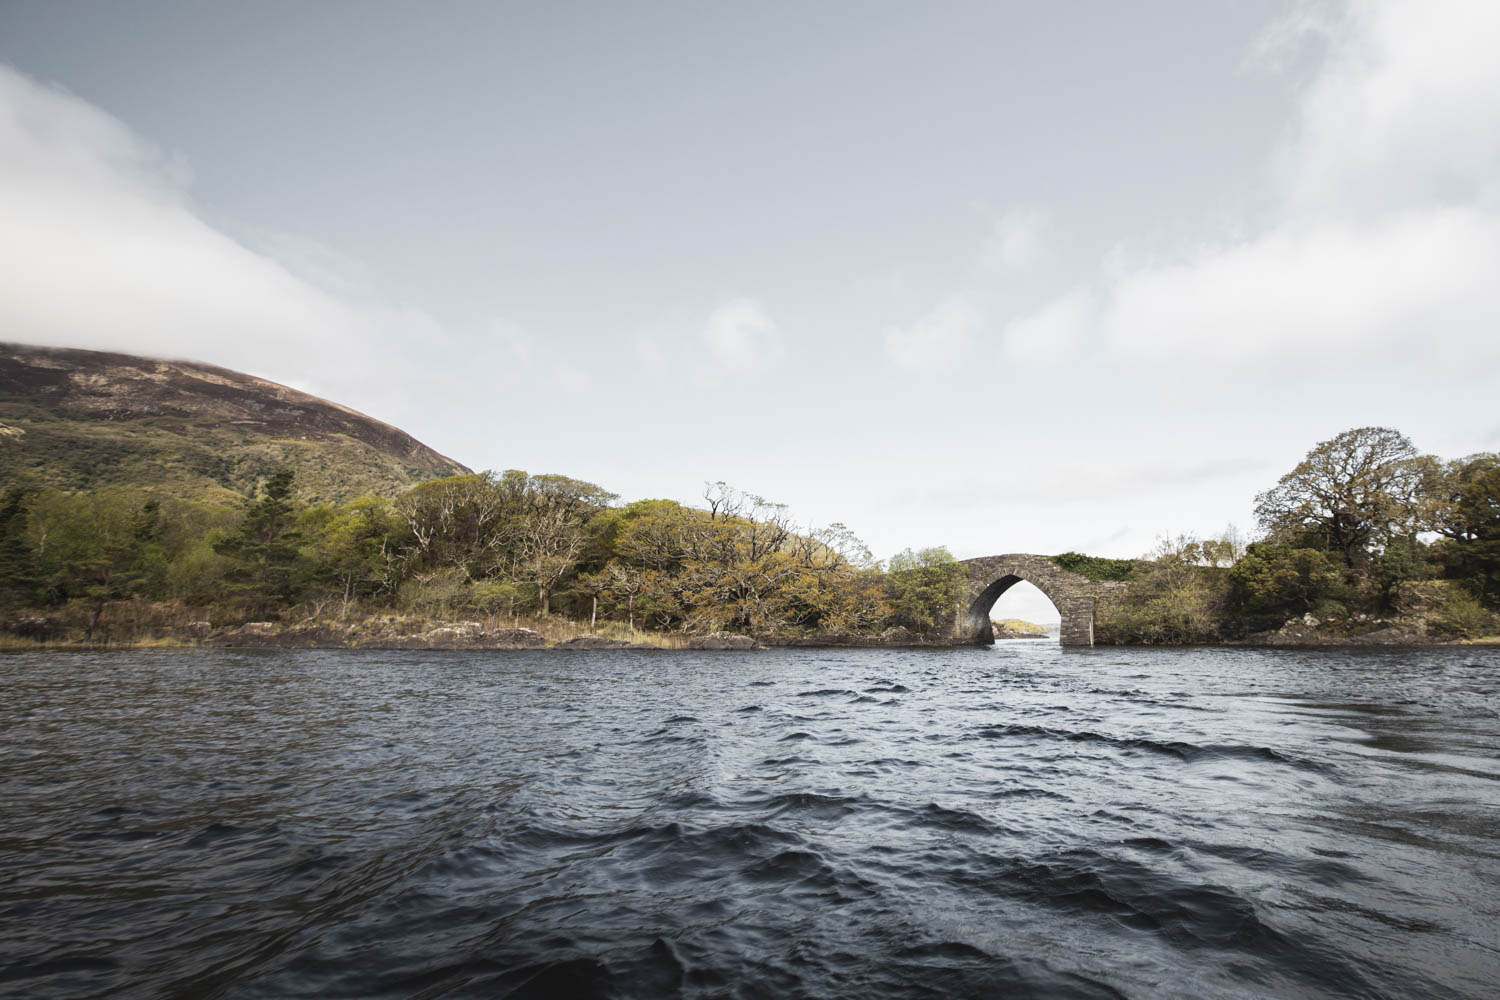 The 18th Century Brickeen Bridge with it's single arch, dividing Muckross Peninsula from Brickeen Island.